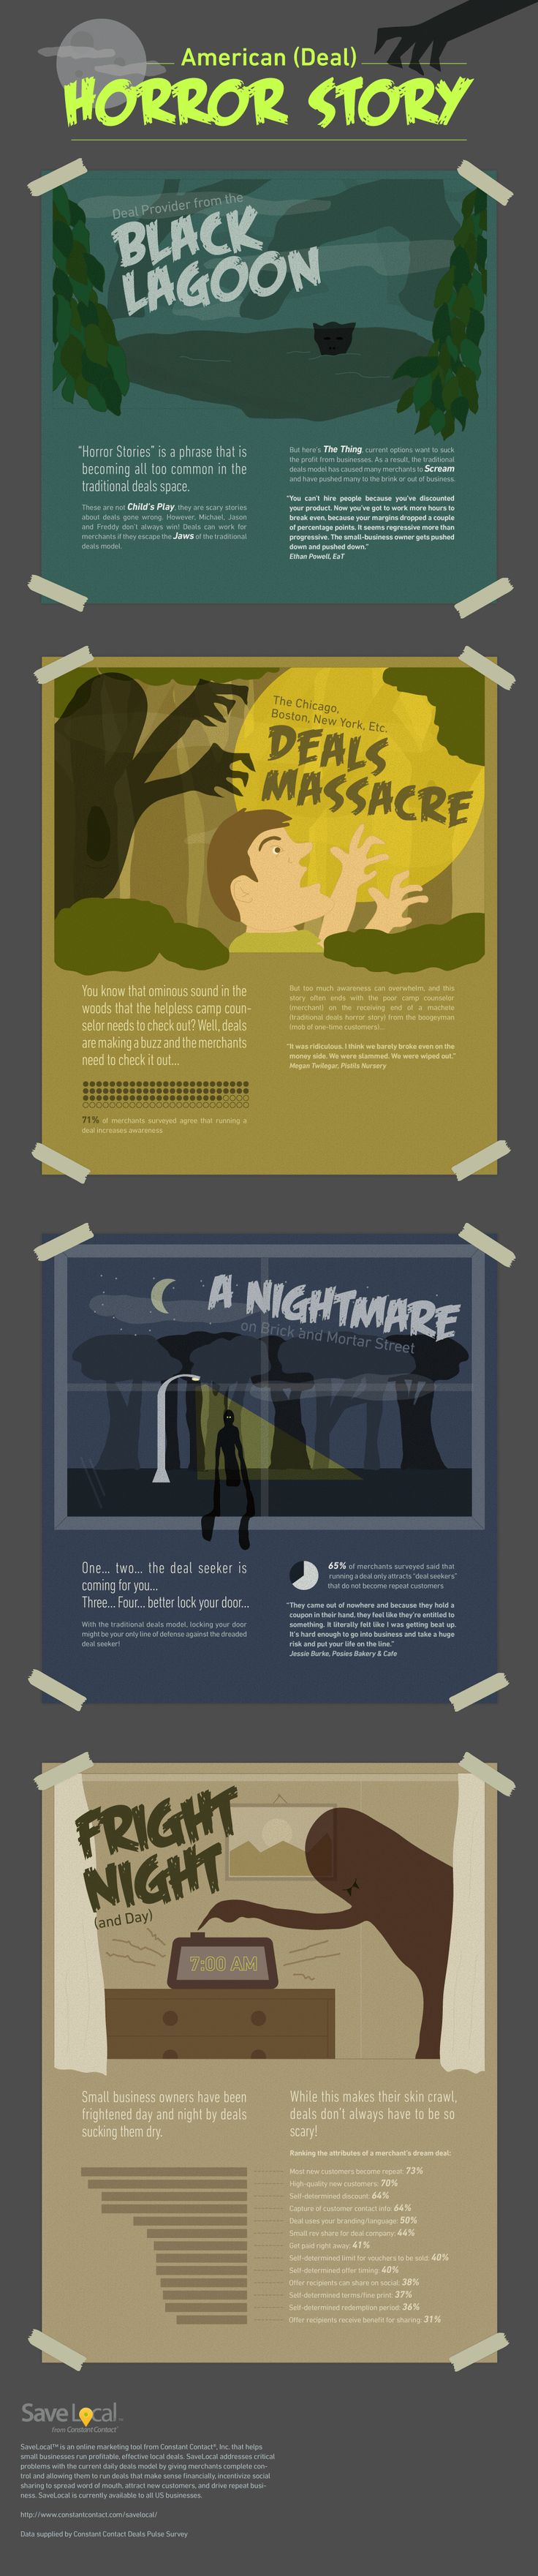 17 best images about infographics halloween scary for merchants running daily deals can be mighty scary here s an infographic from constant contact that shows what can go wrong daily deals for us